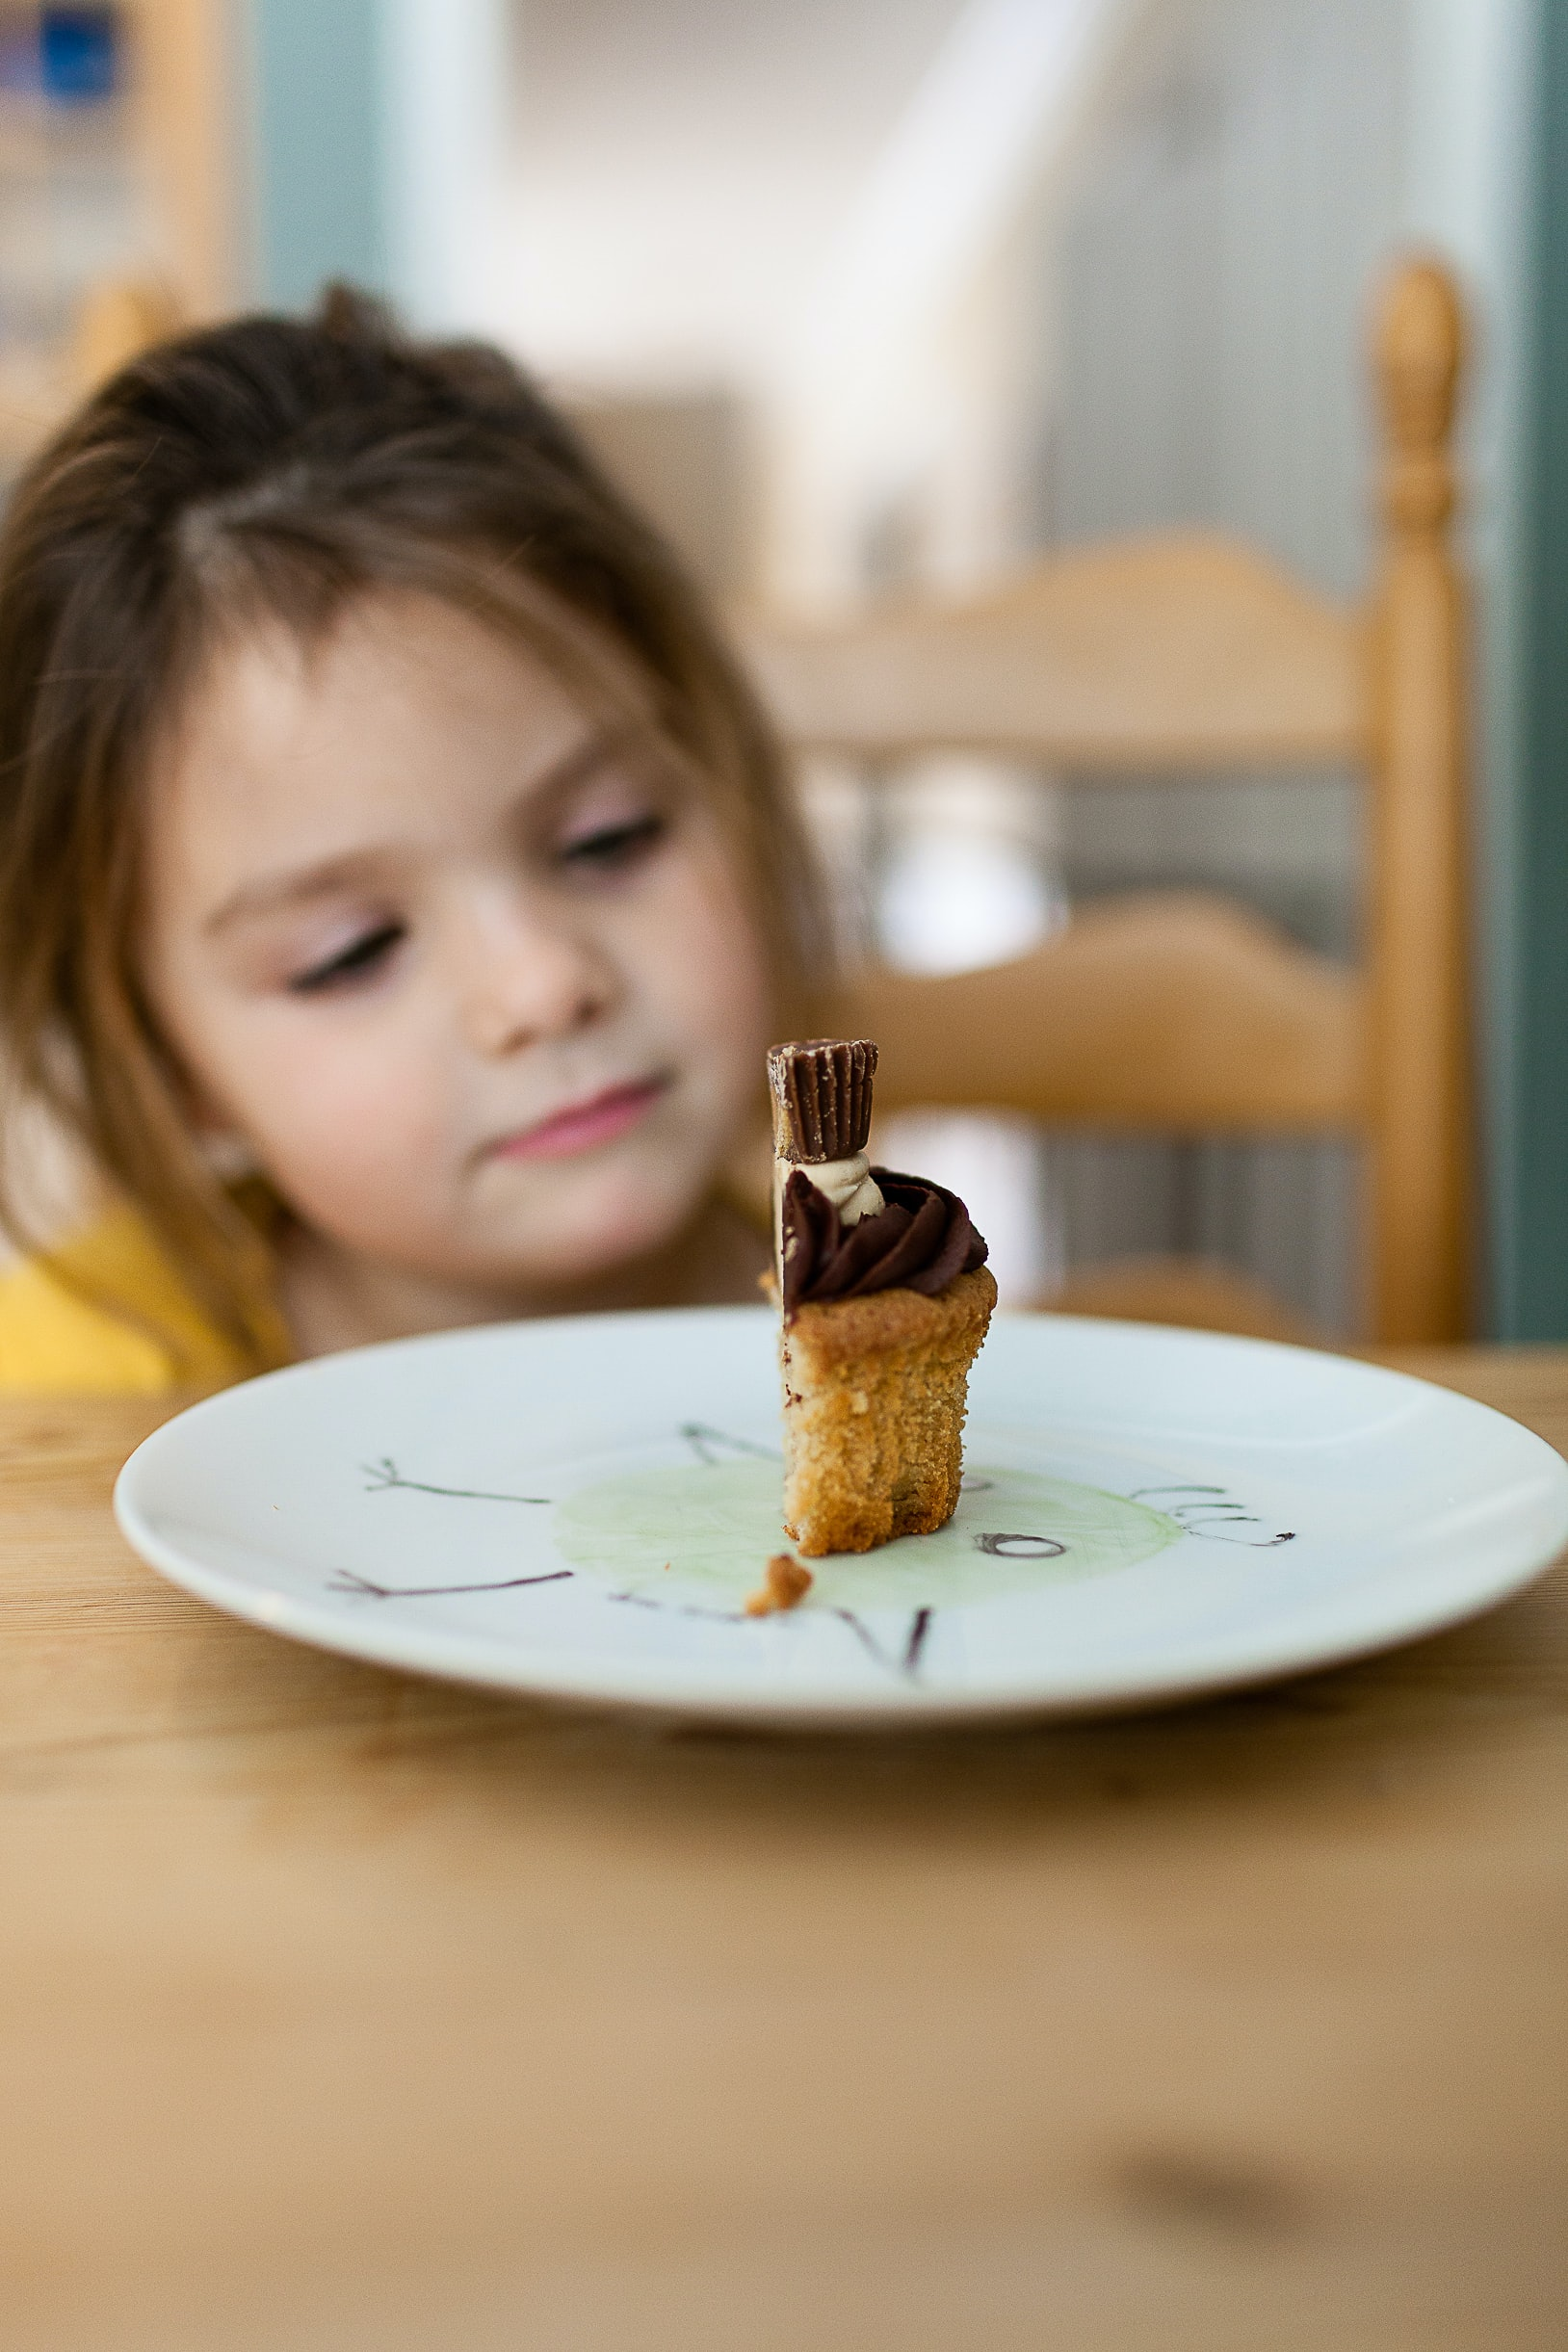 A little girl staring at half of a cupcake on a plate